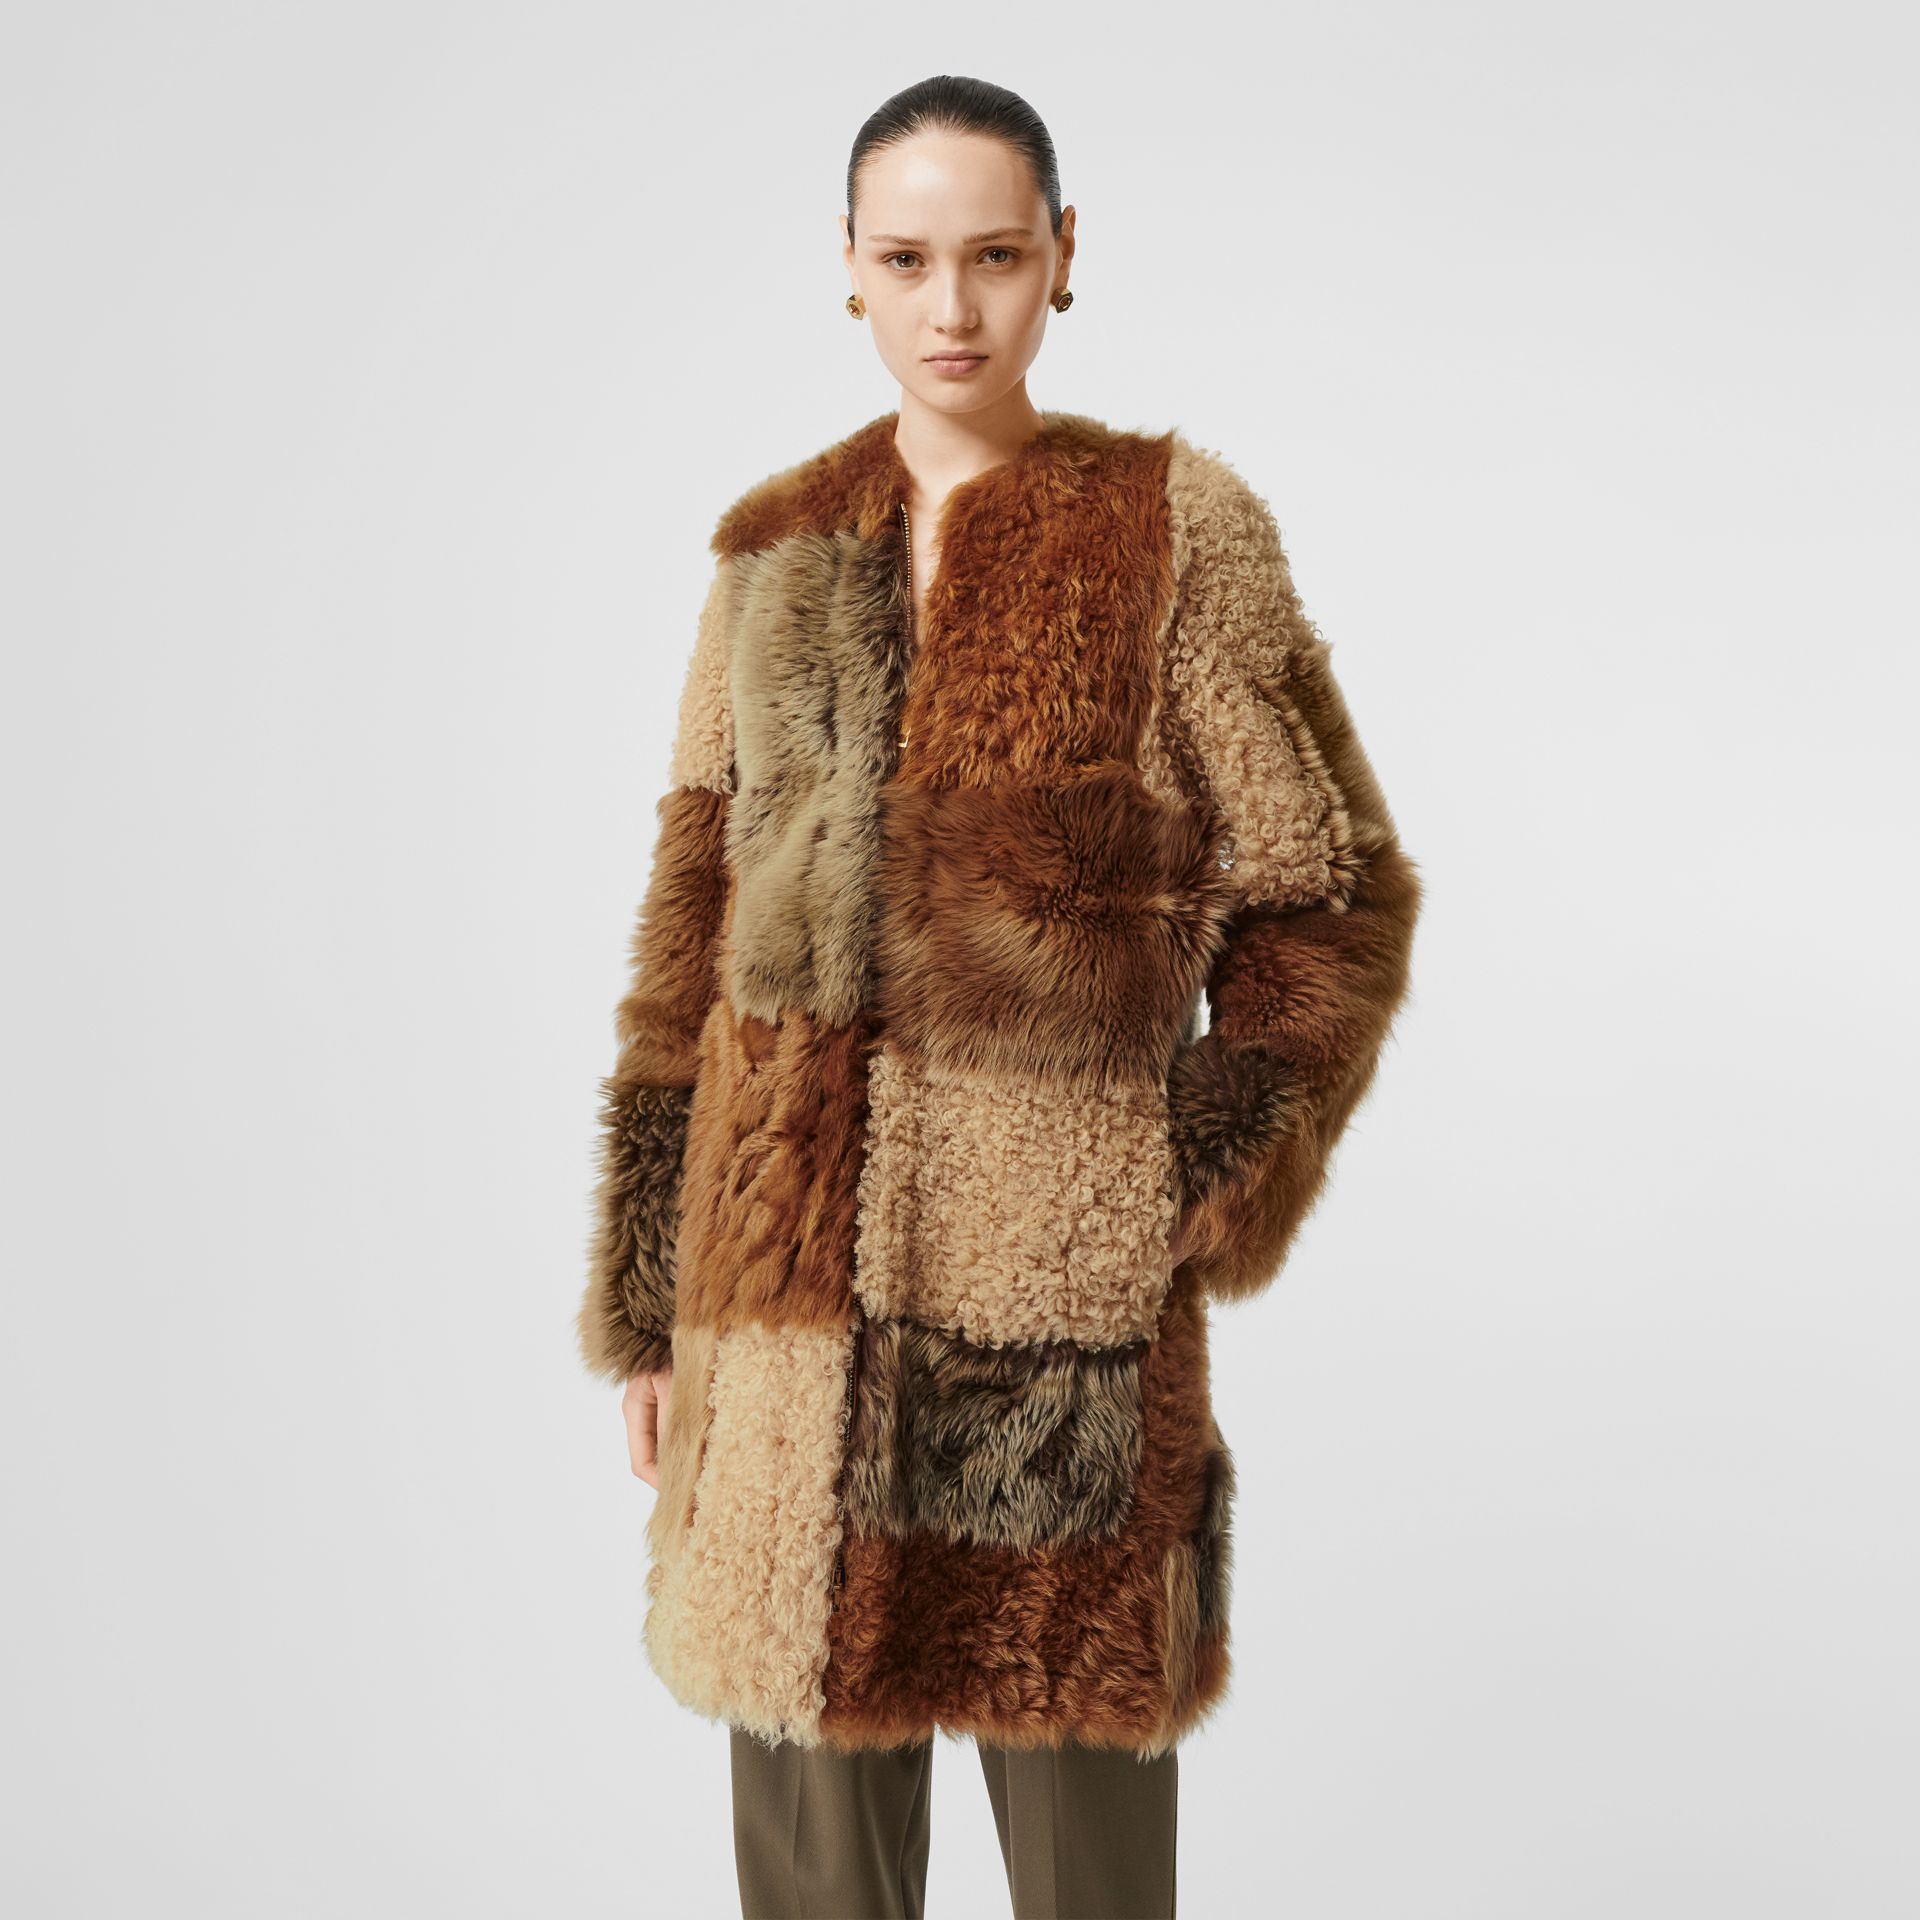 Patchwork Shearling Coat in Toffee - Women | Burberry - gallery image 6